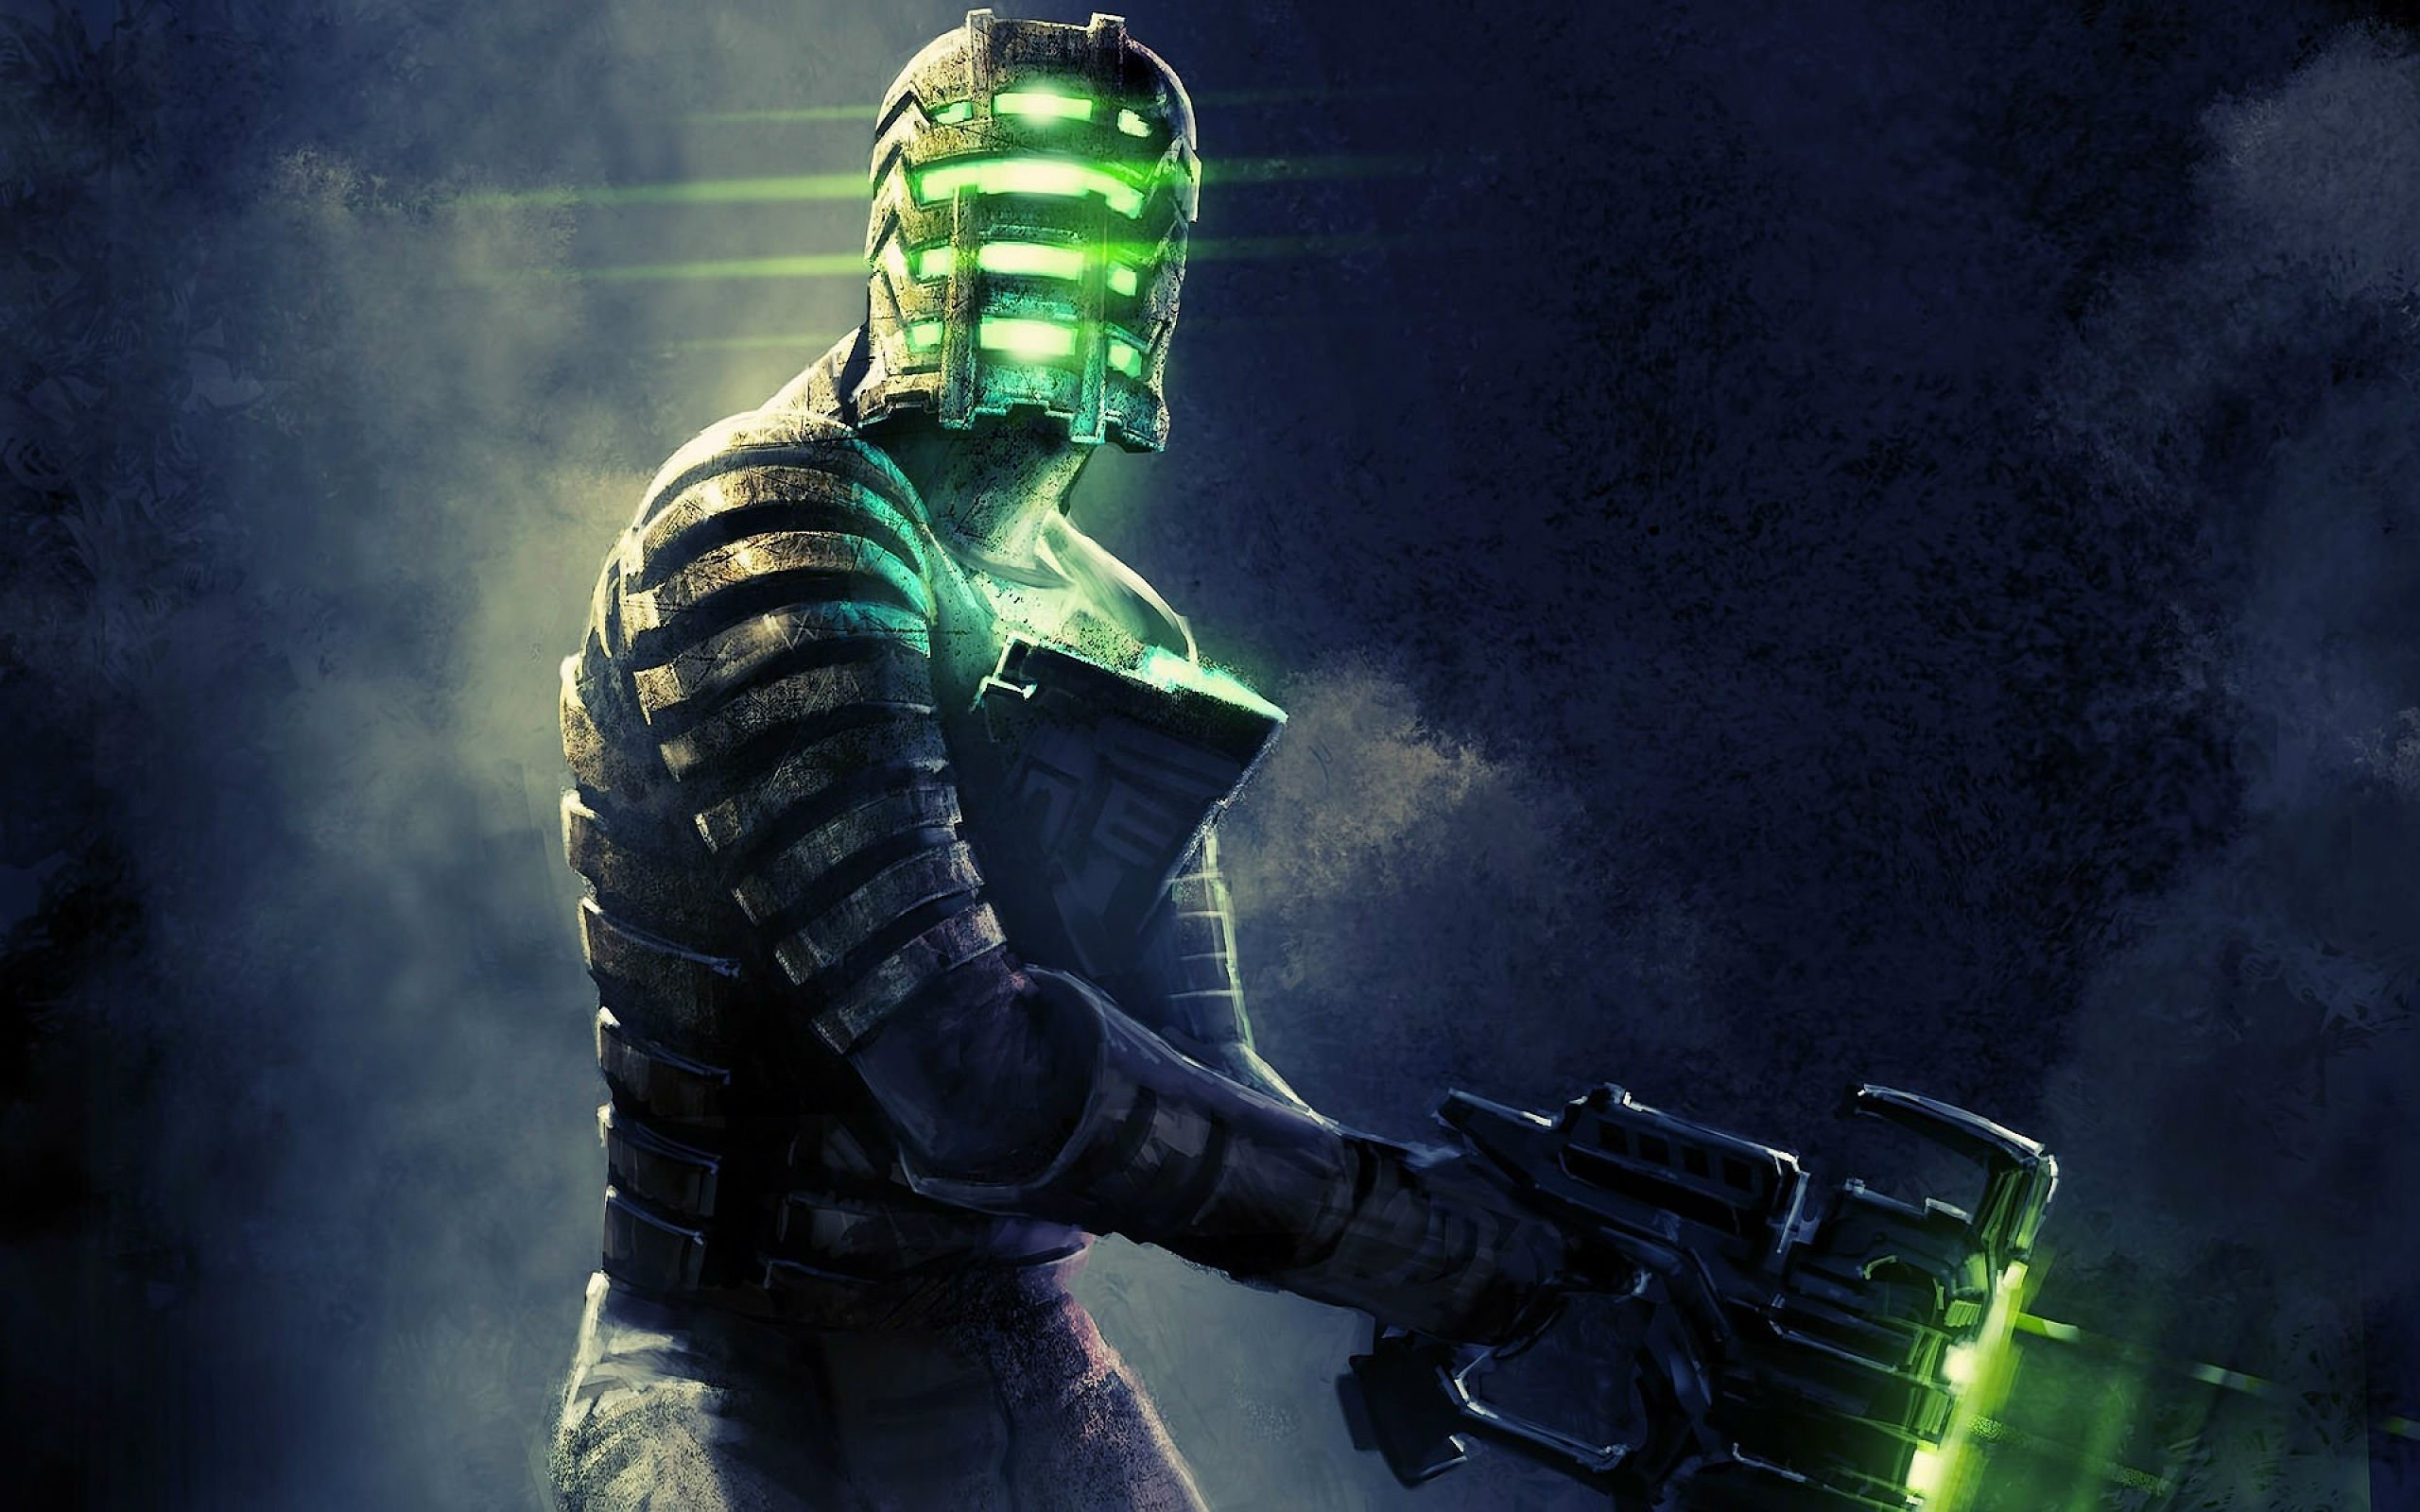 DEAD SPACE sci-fi shooter action futuristic 1deads warrior ...